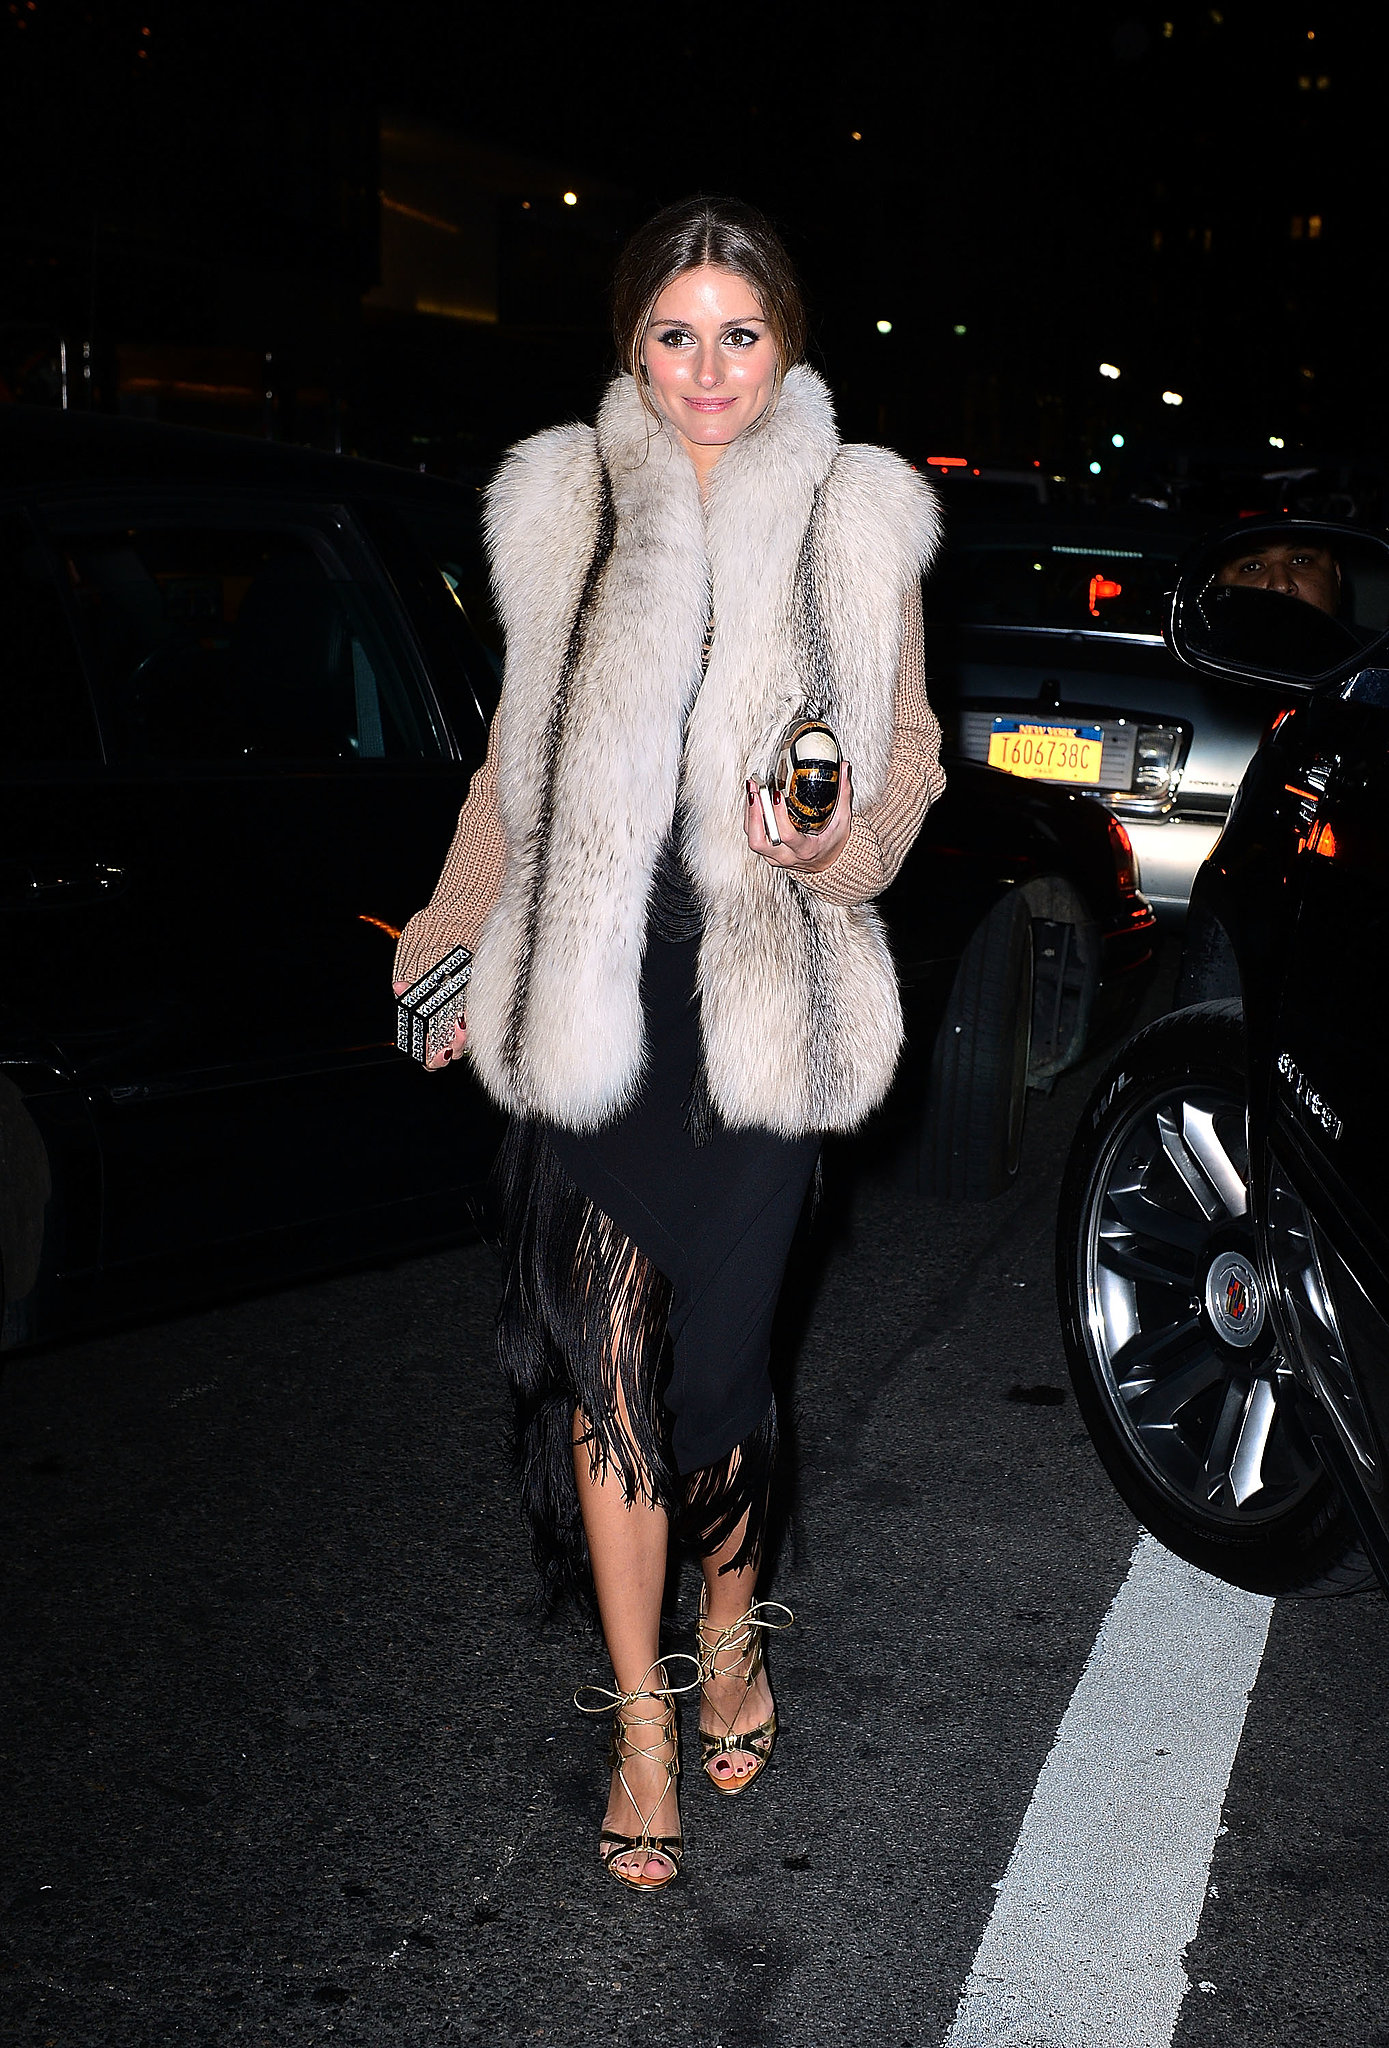 Olivia added a furry vest to her evening look for a chic Winter-ready effect.